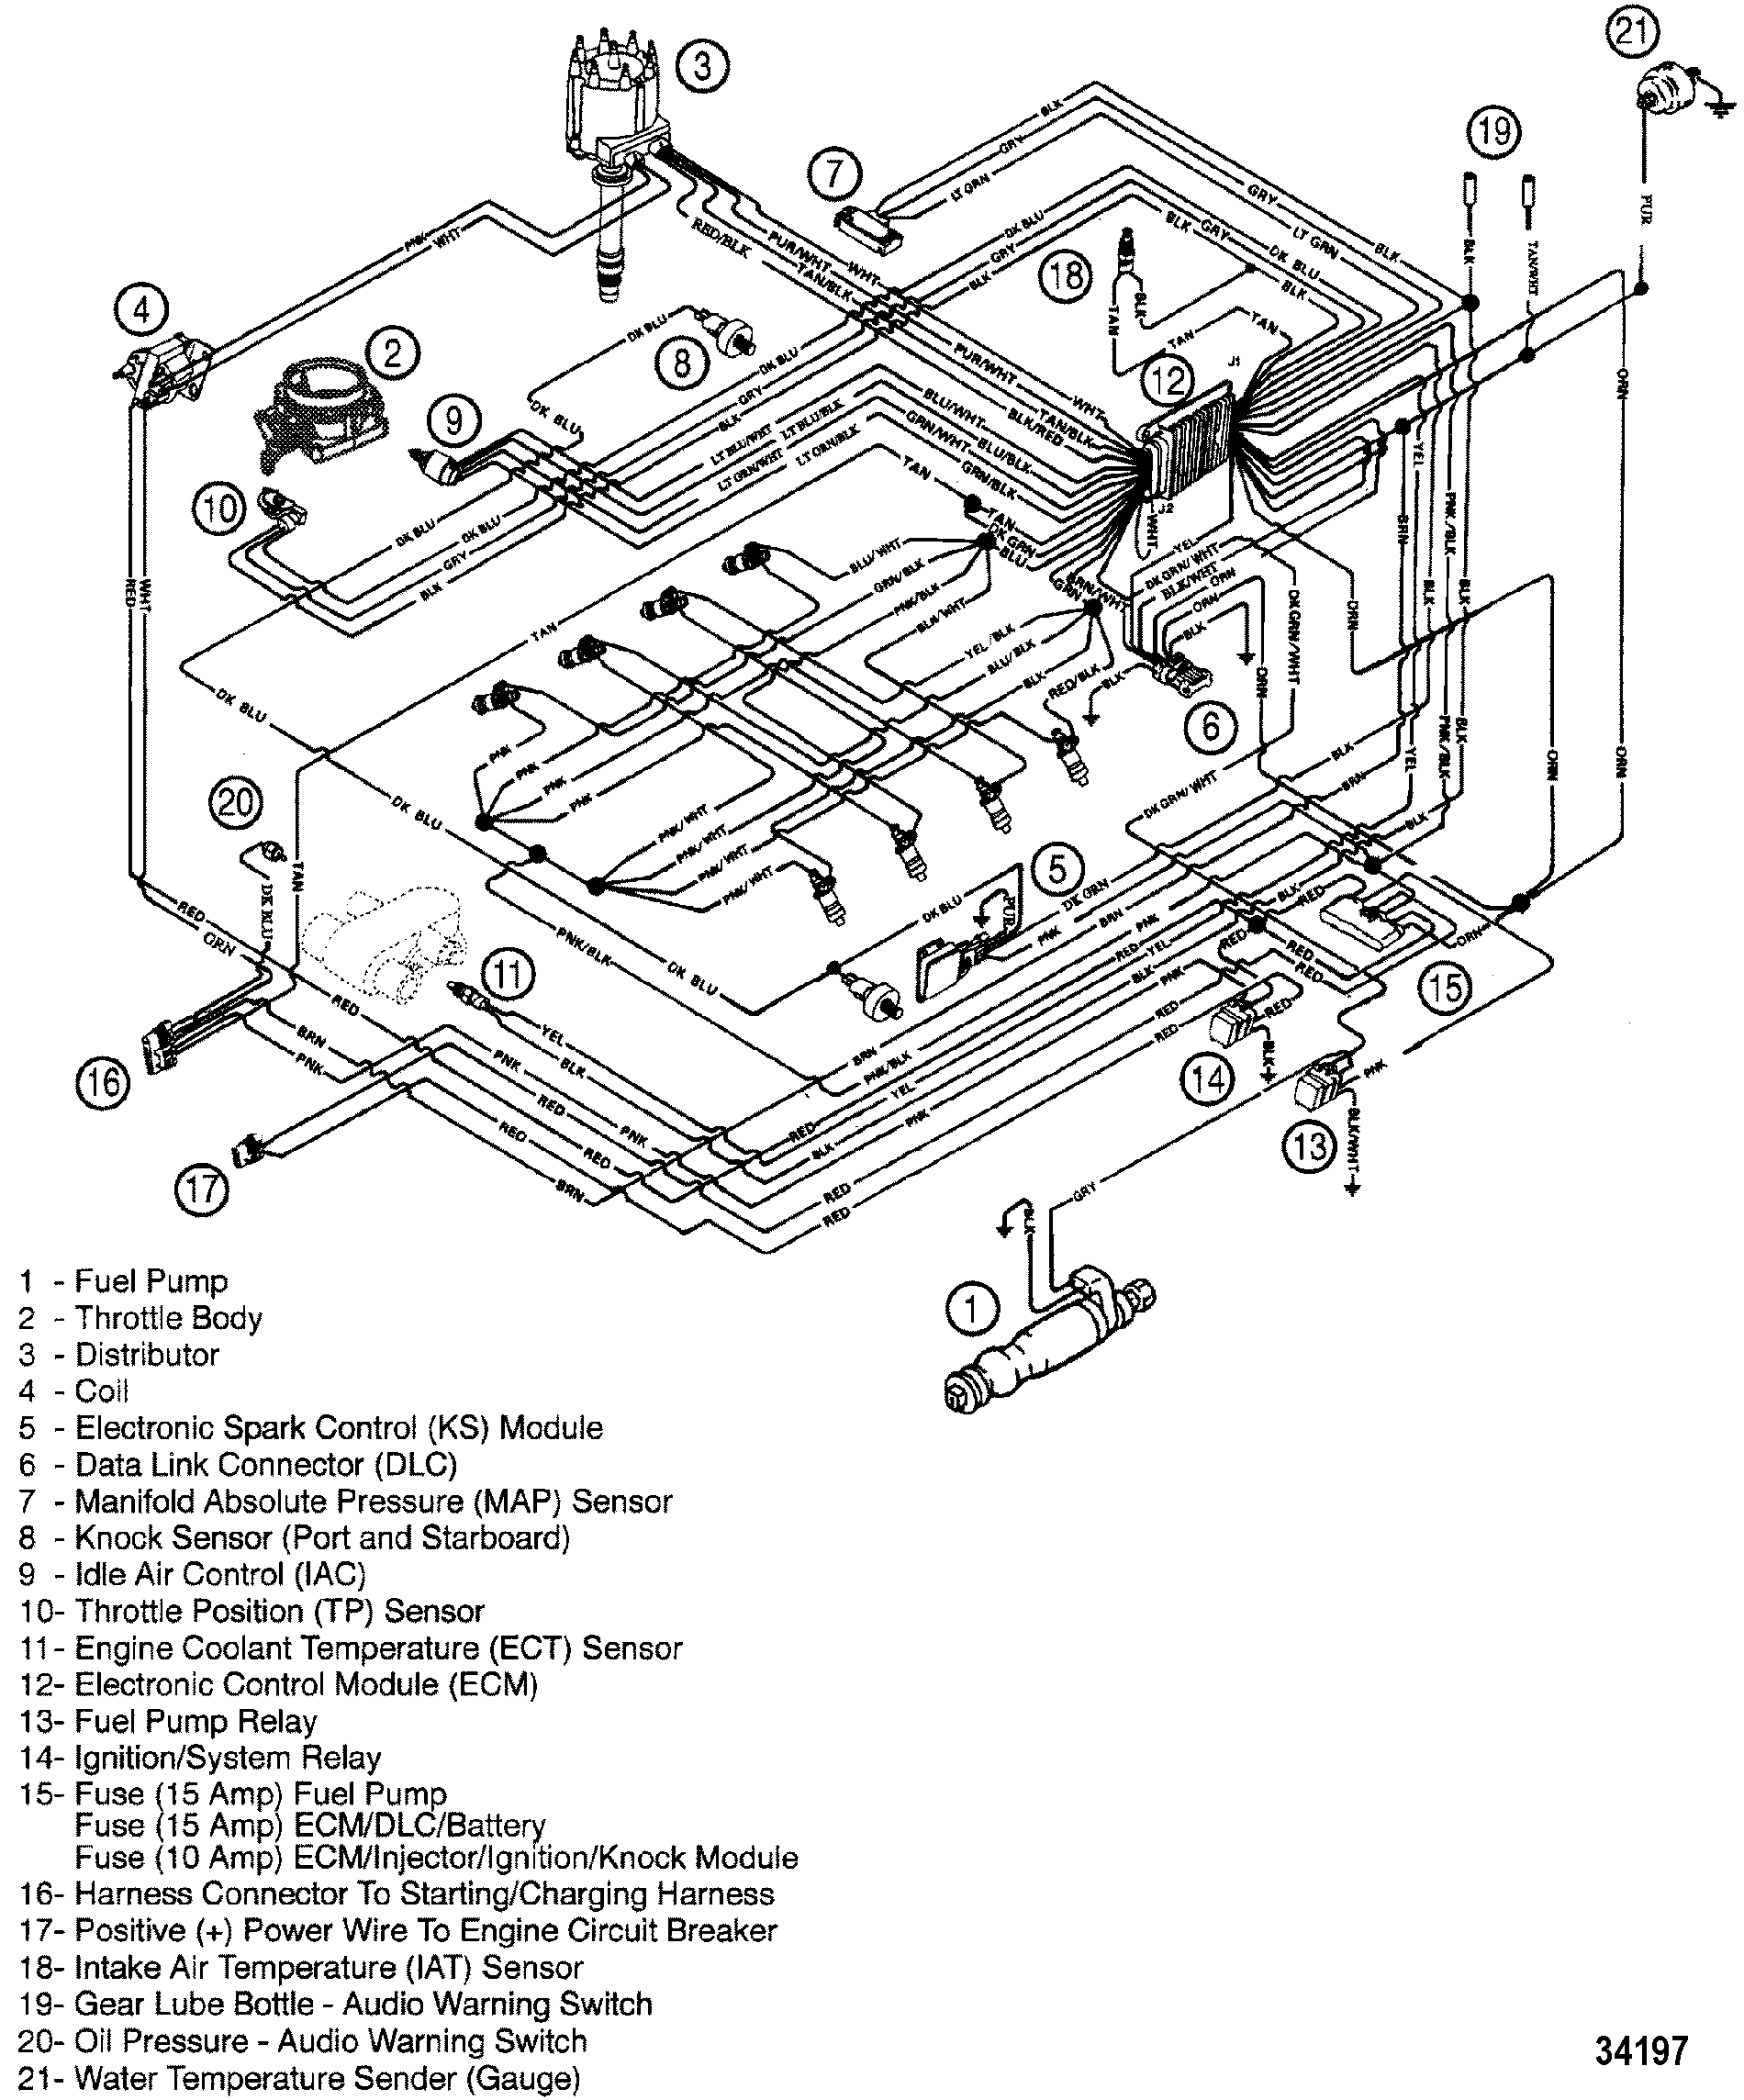 Basic Boat Wiring Diagram Engine 454 Library Sailboat Harness Section Drawing Hover Or Click To View Larger